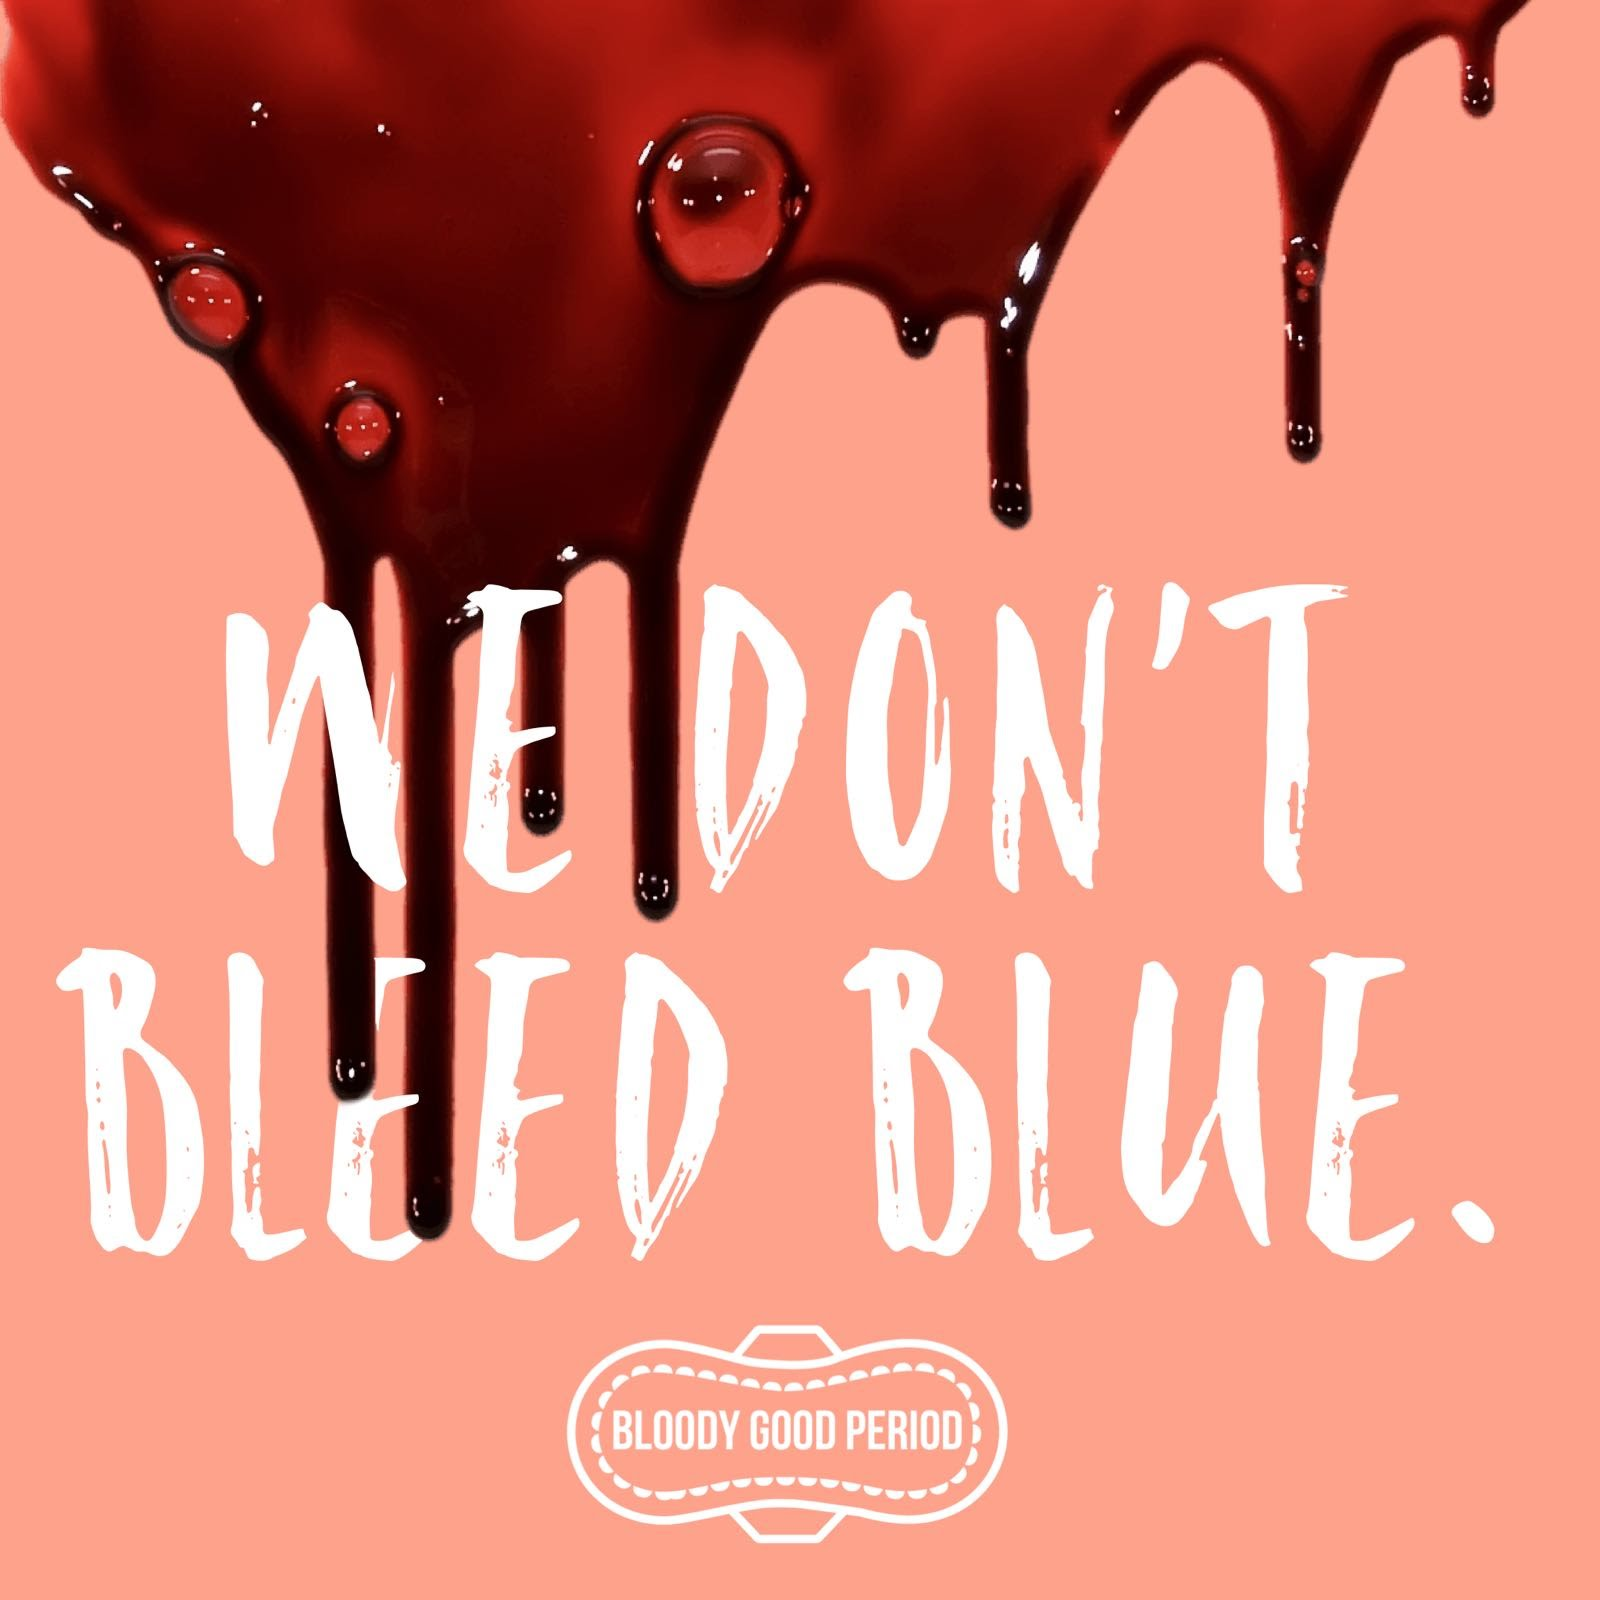 We don't bleed blue.